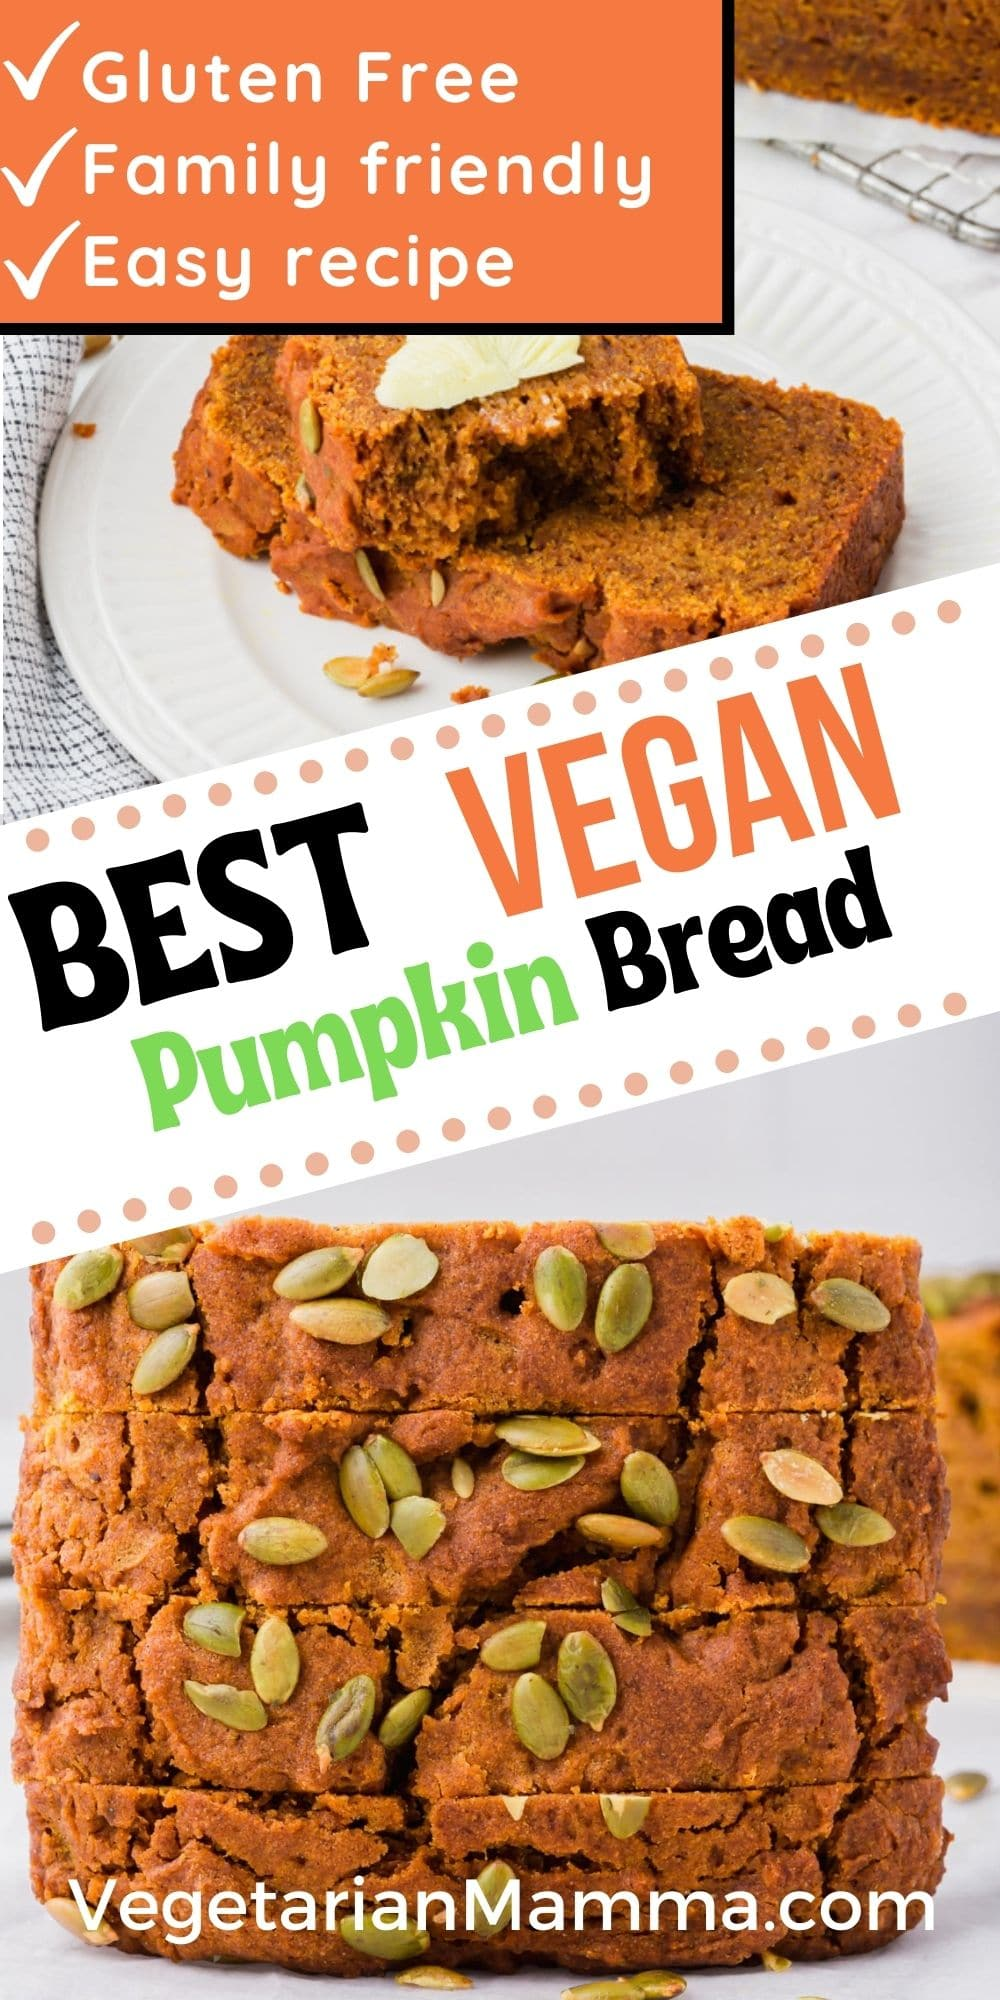 Vegan Pumpkin Bread is a quick and easy gluten-free bread that everyone will love for fall! If you miss Starbucks pumpkin bread, you won't with this delicious vegan recipe.